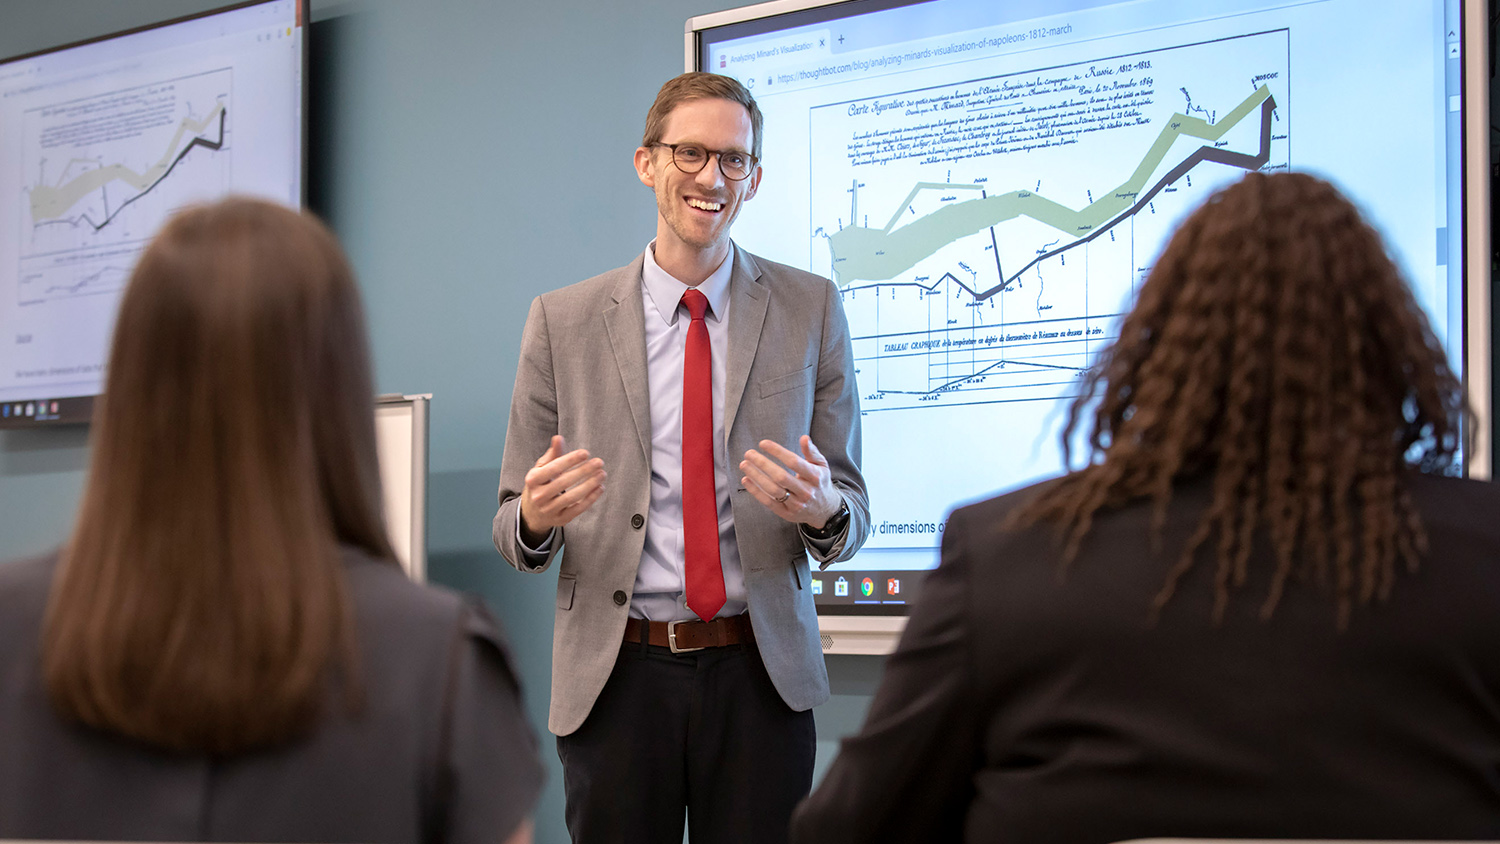 Professor Timothy Drake in a classroom.